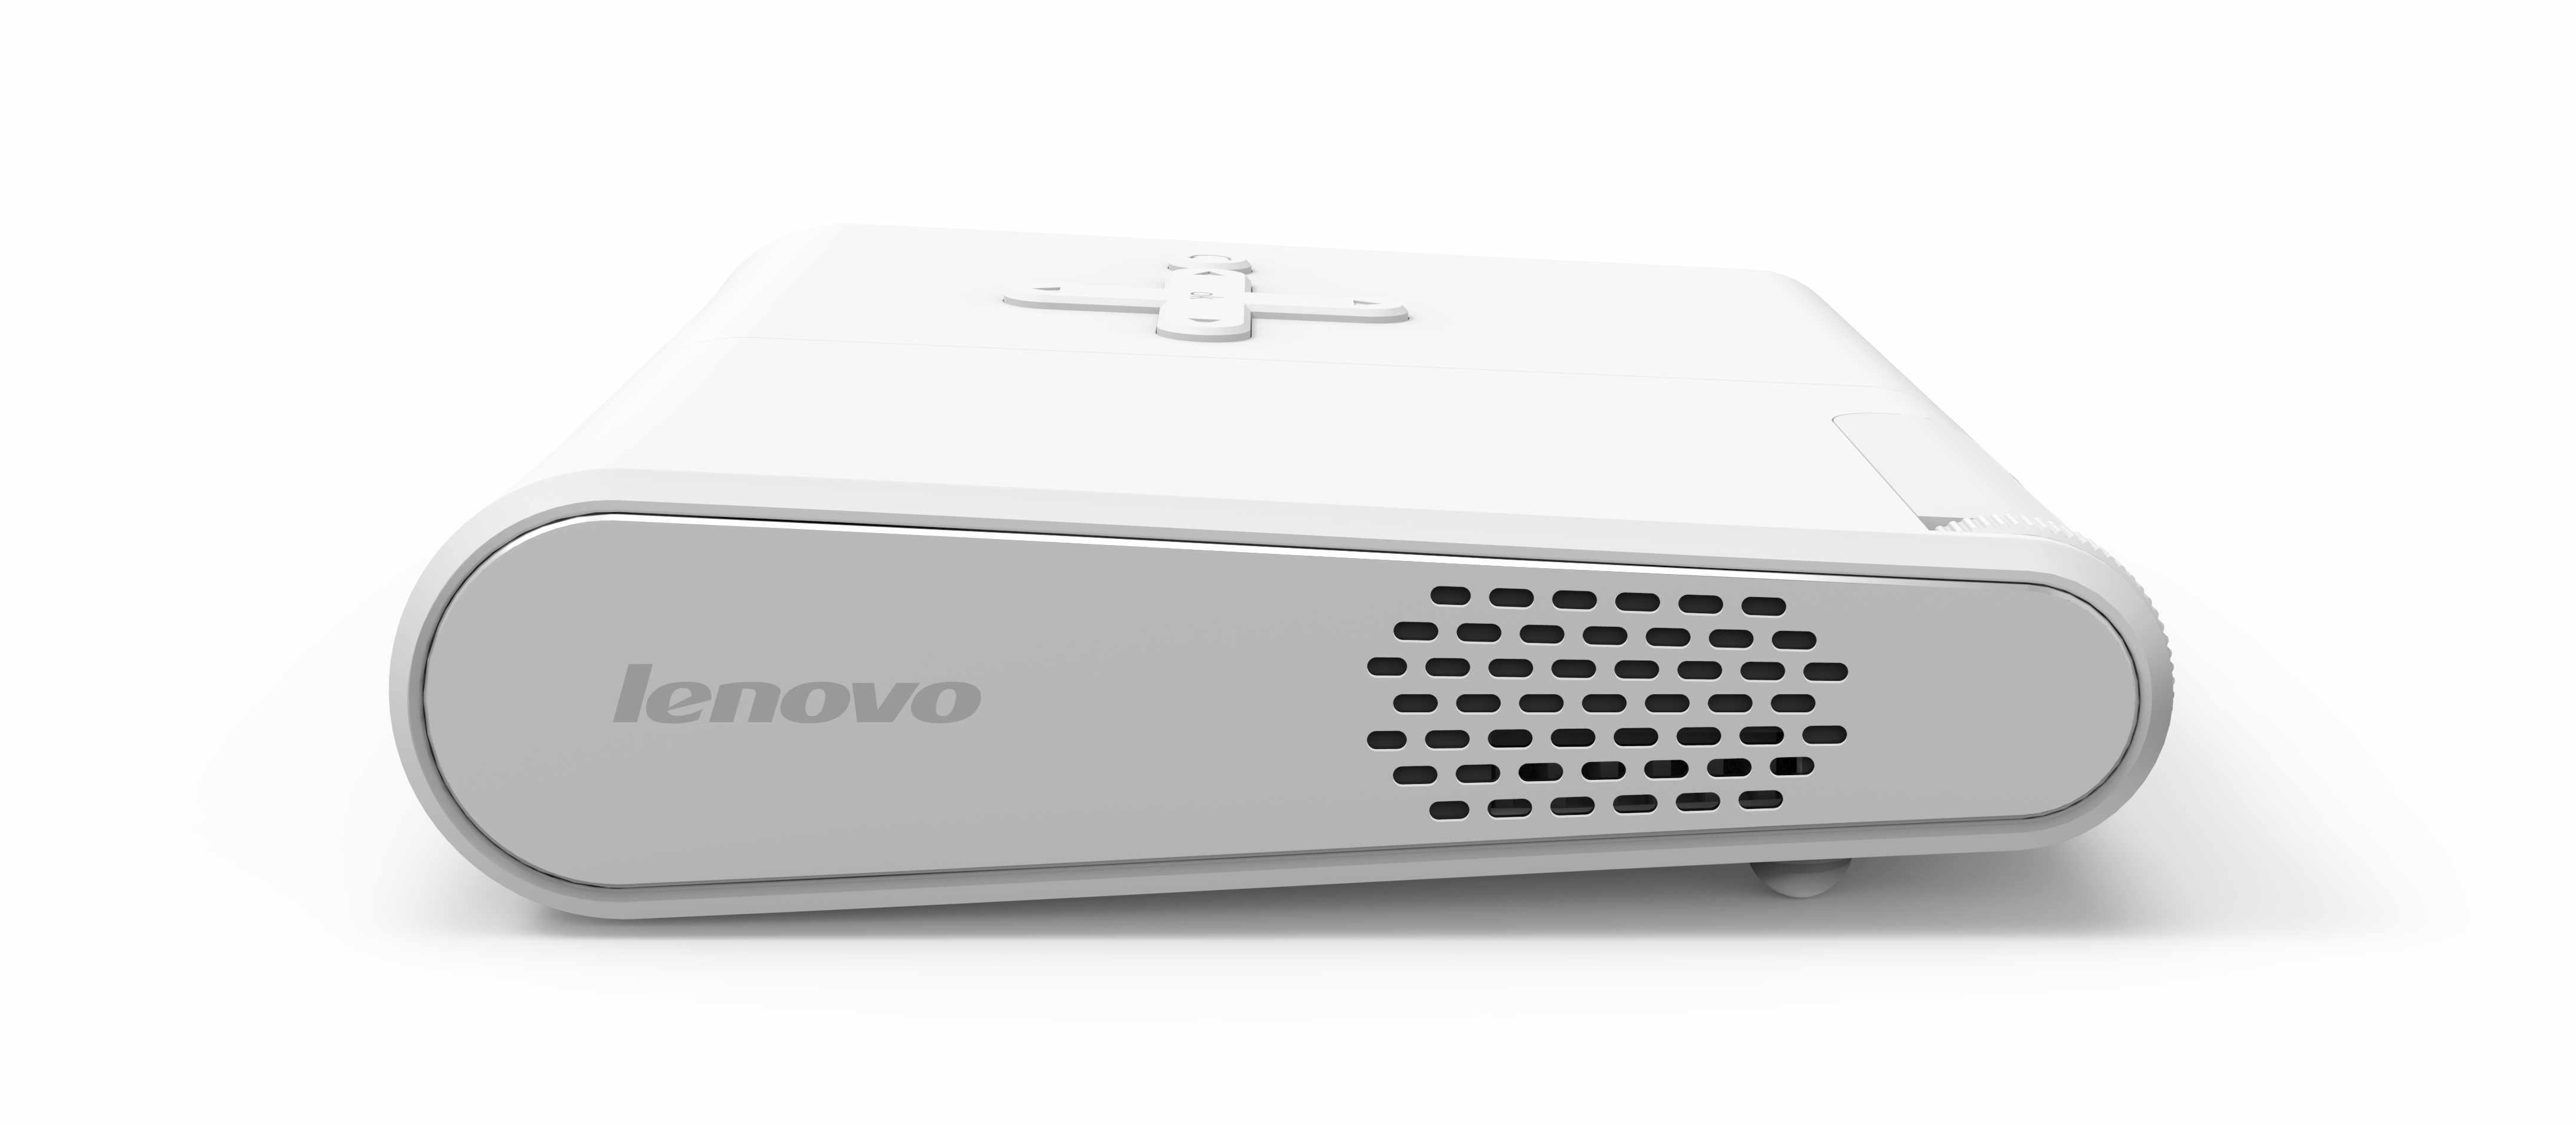 Lenovo 39 s pocket projector pairs with phones for anytime for Small projector for phone